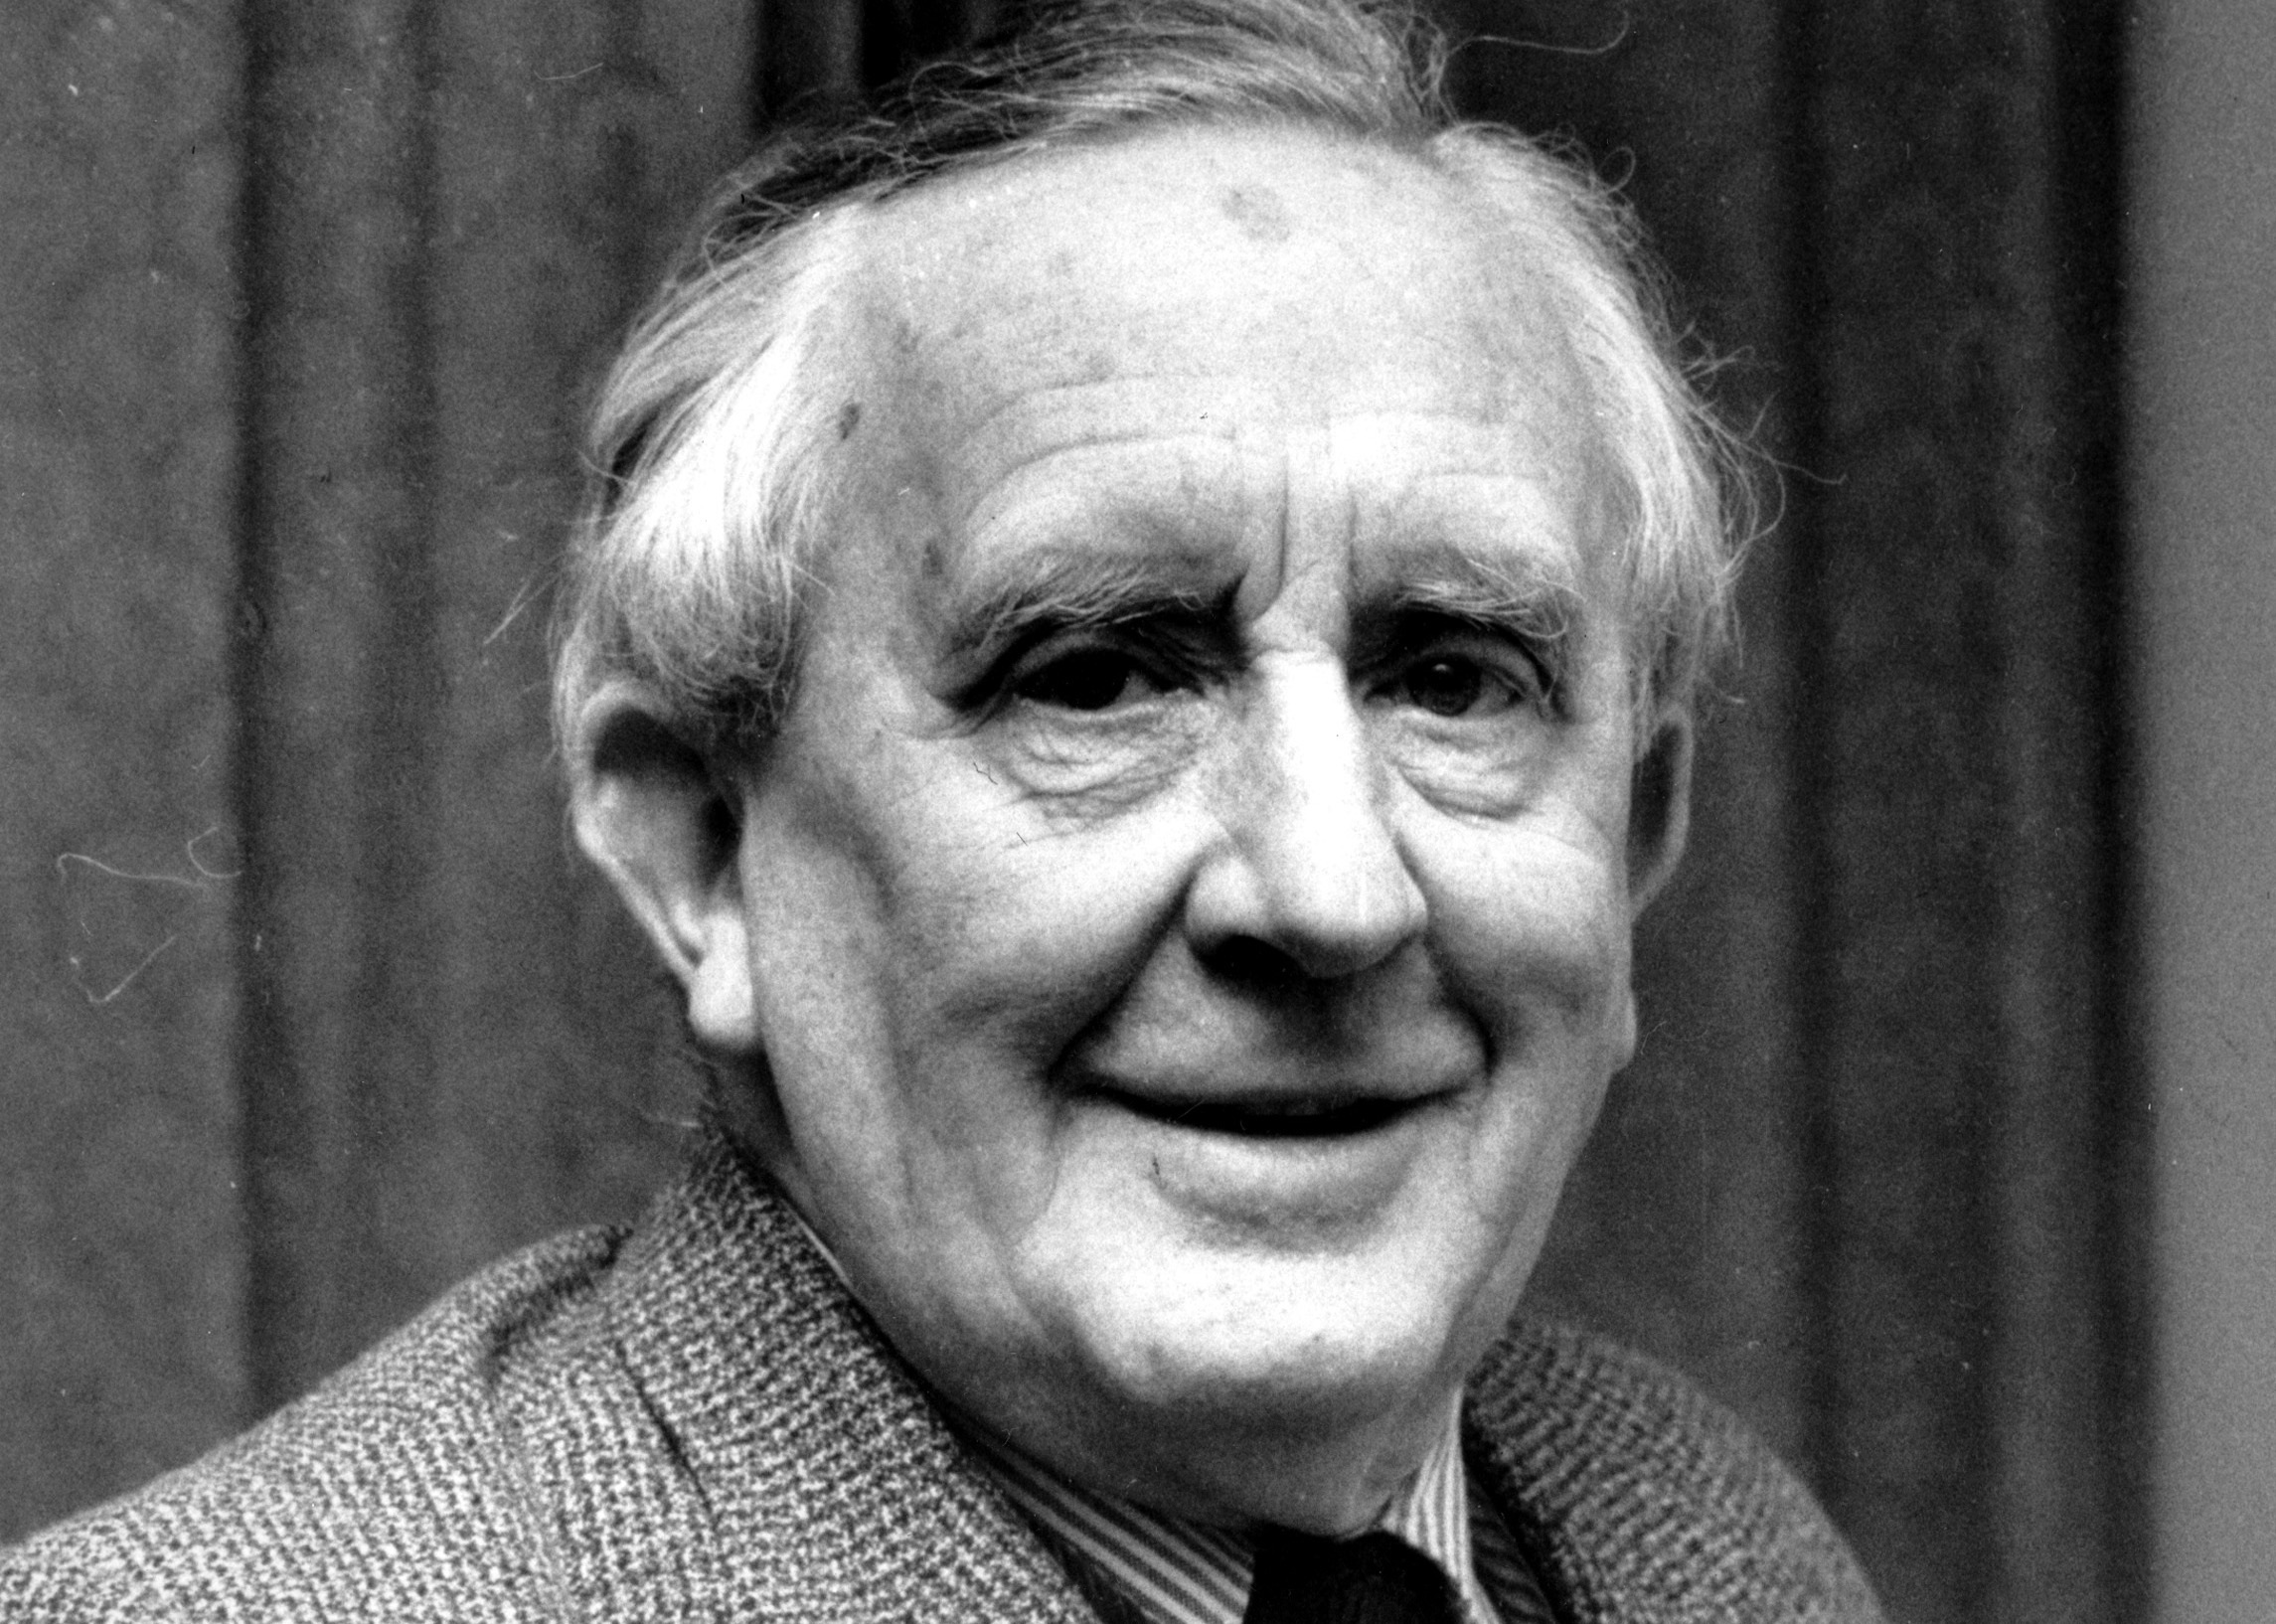 http://s3.amazonaws.com/libapps/accounts/11695/images/j-r-r-tolkien1.jpg